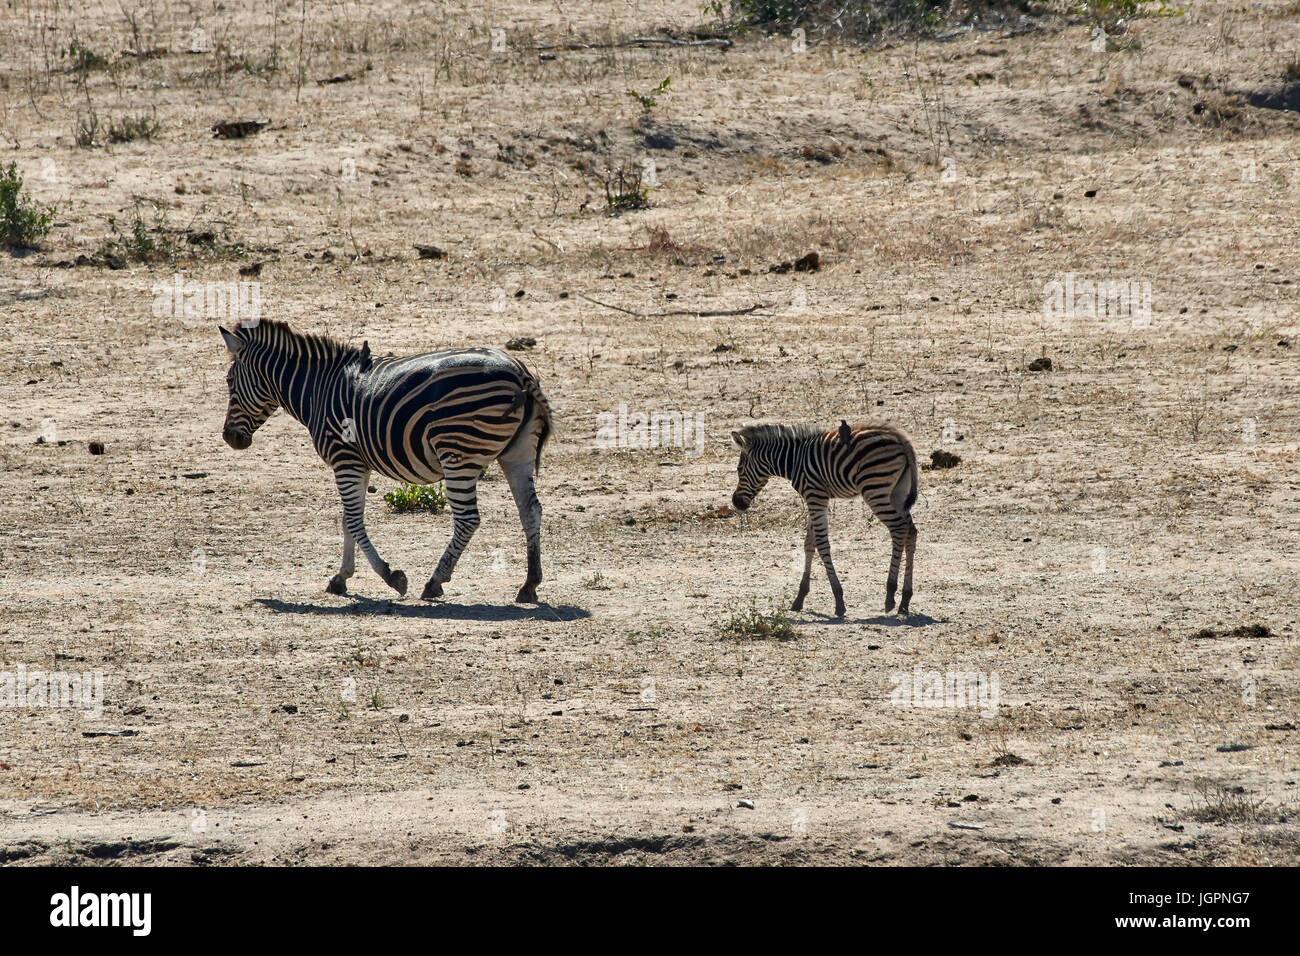 Zebra, Equus quagga, adult and foal walking across the dry plain at Arathusa Lodge, Sabi Sands game reserve, South - Stock Image